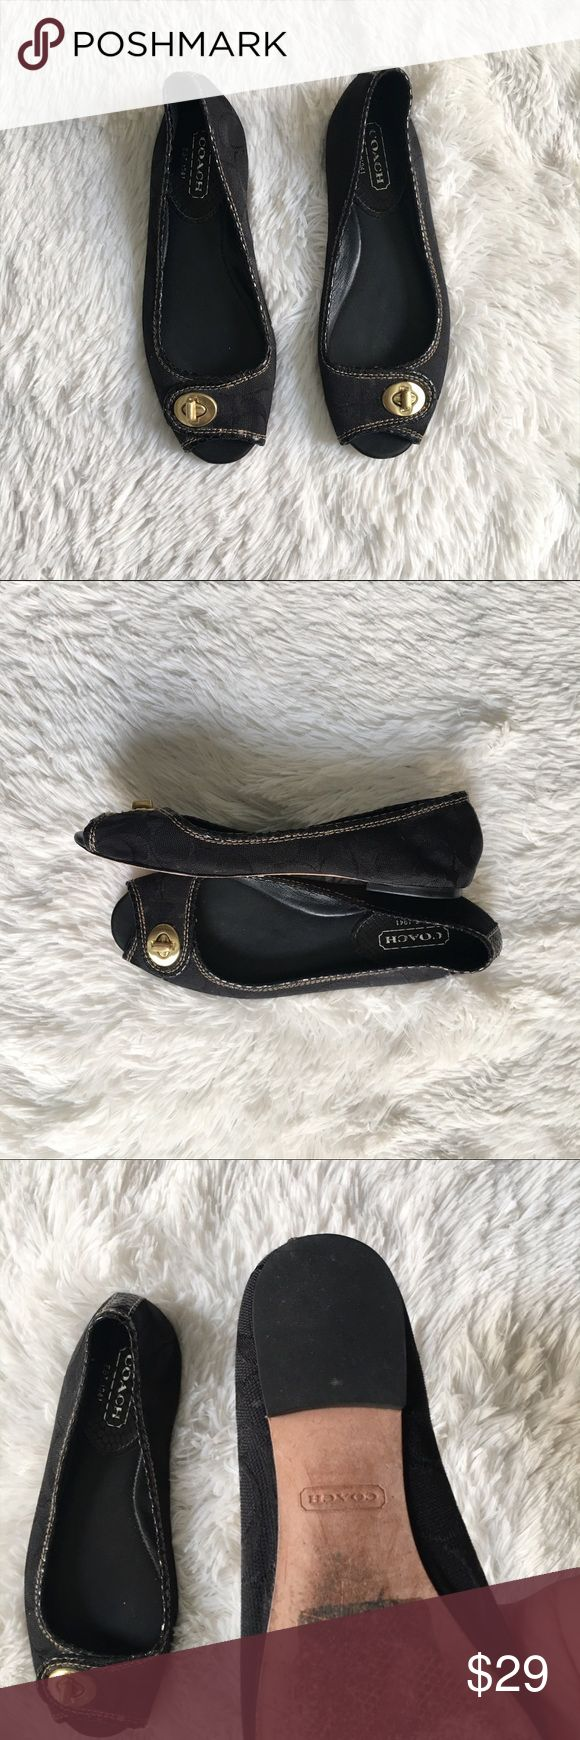 Coach Flats 'Nicola' Black Logo Print Gold Clasp 6 Classy coach Flats with logo embossed printed material. Features gold clasp. Definite contender for your favorite everyday shoe   • Size 6  • Peep toe  • Black and gold  • Made In China  • Good used condition   I am  ⭐️⭐️⭐️⭐️⭐️ 5-Star rated plus Ship in 48hrs or less ! Coach Shoes Flats & Loafers